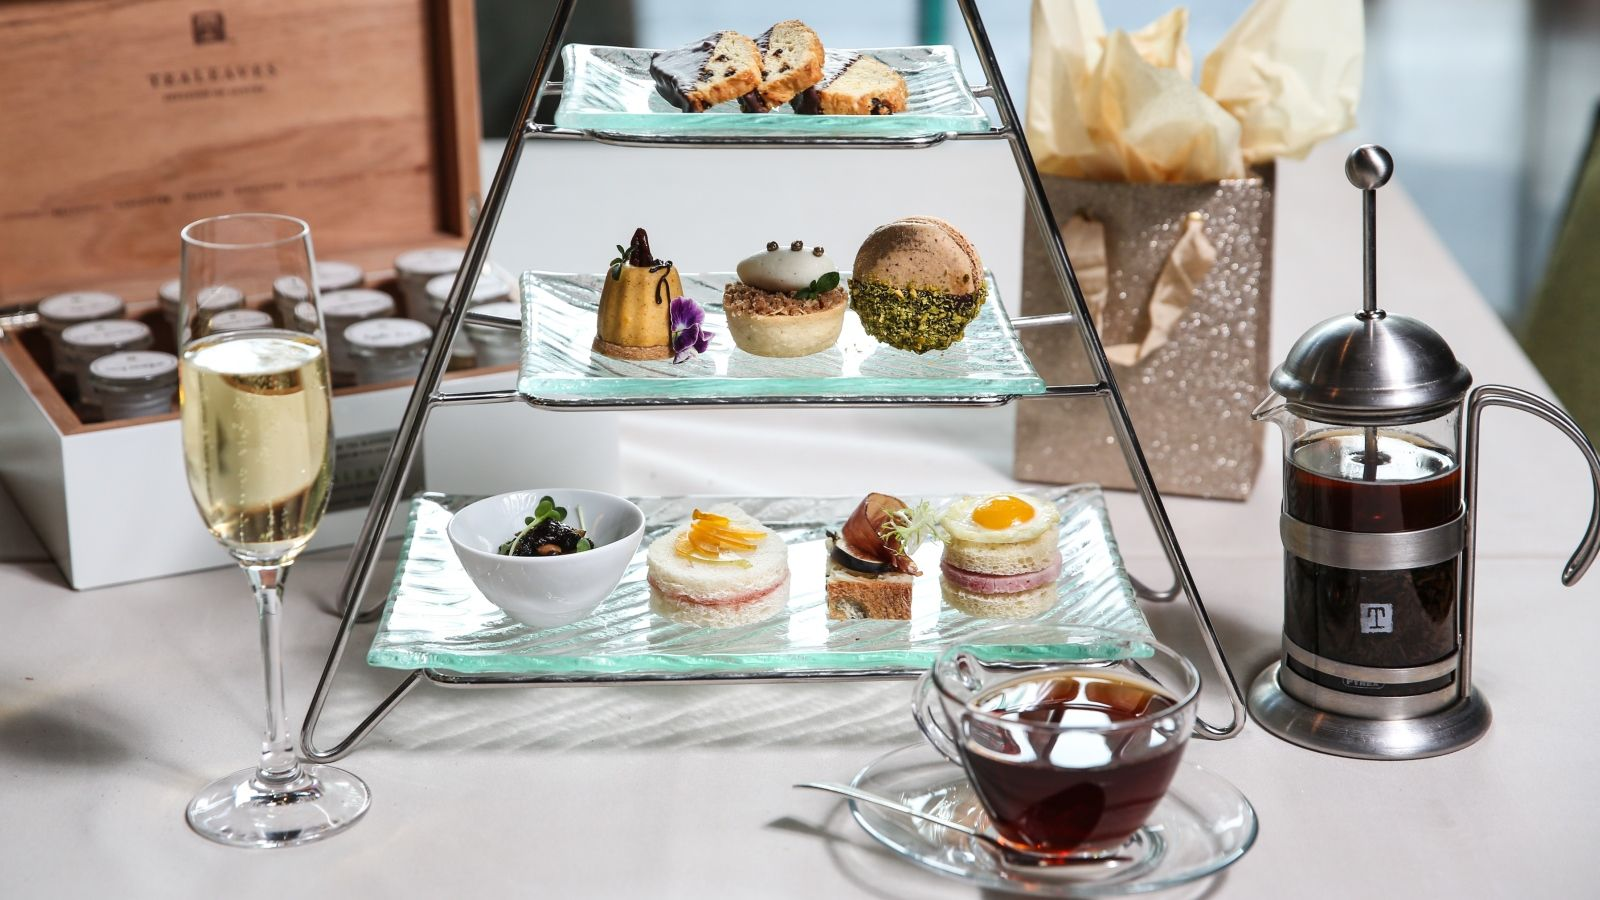 The Art of Tea holiday menu at The St. Regis San Francisco